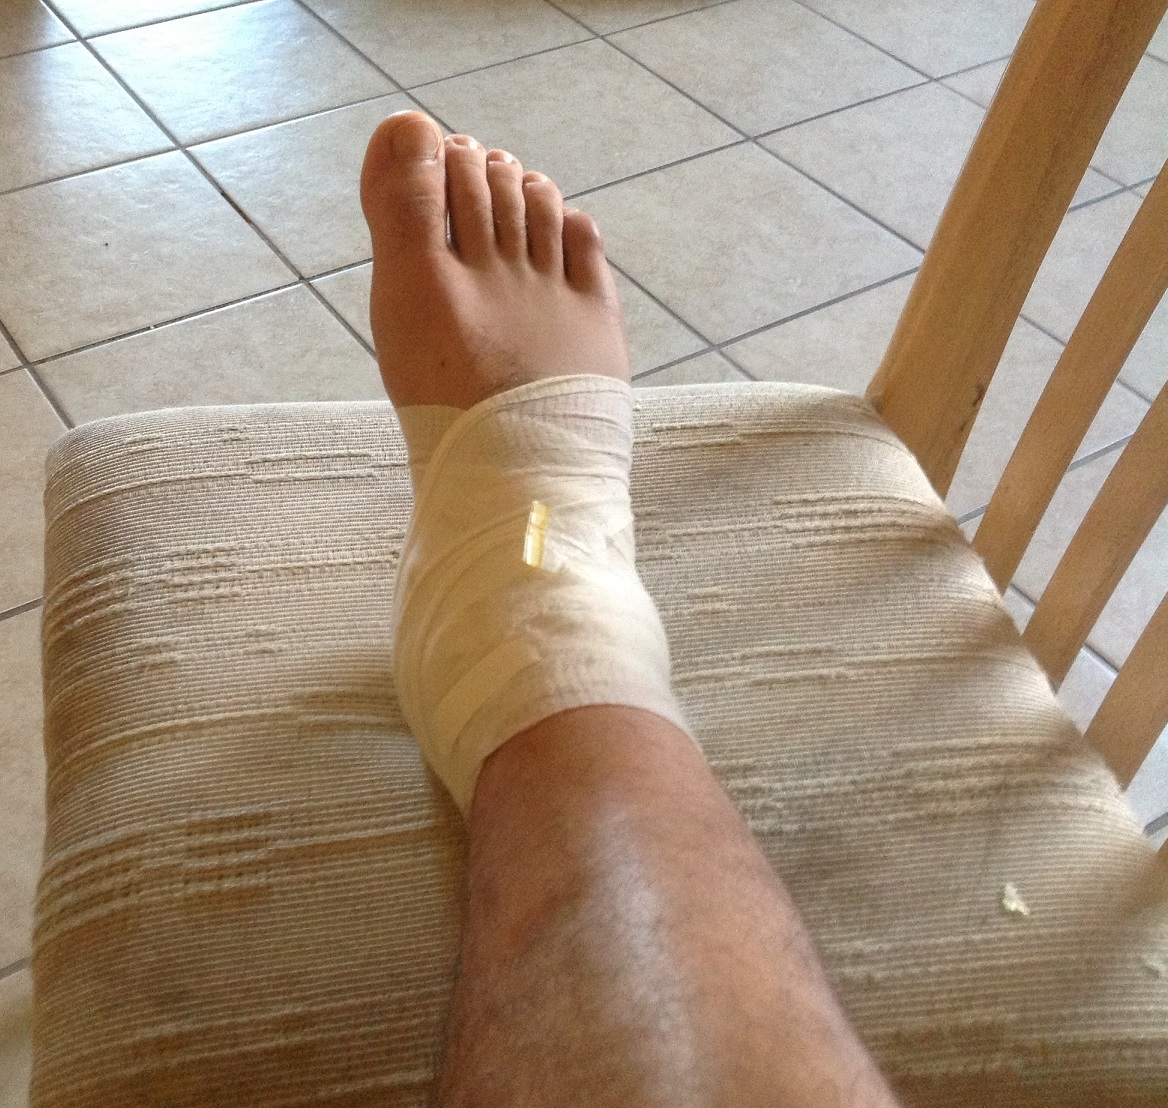 wrapping a sprained ankle